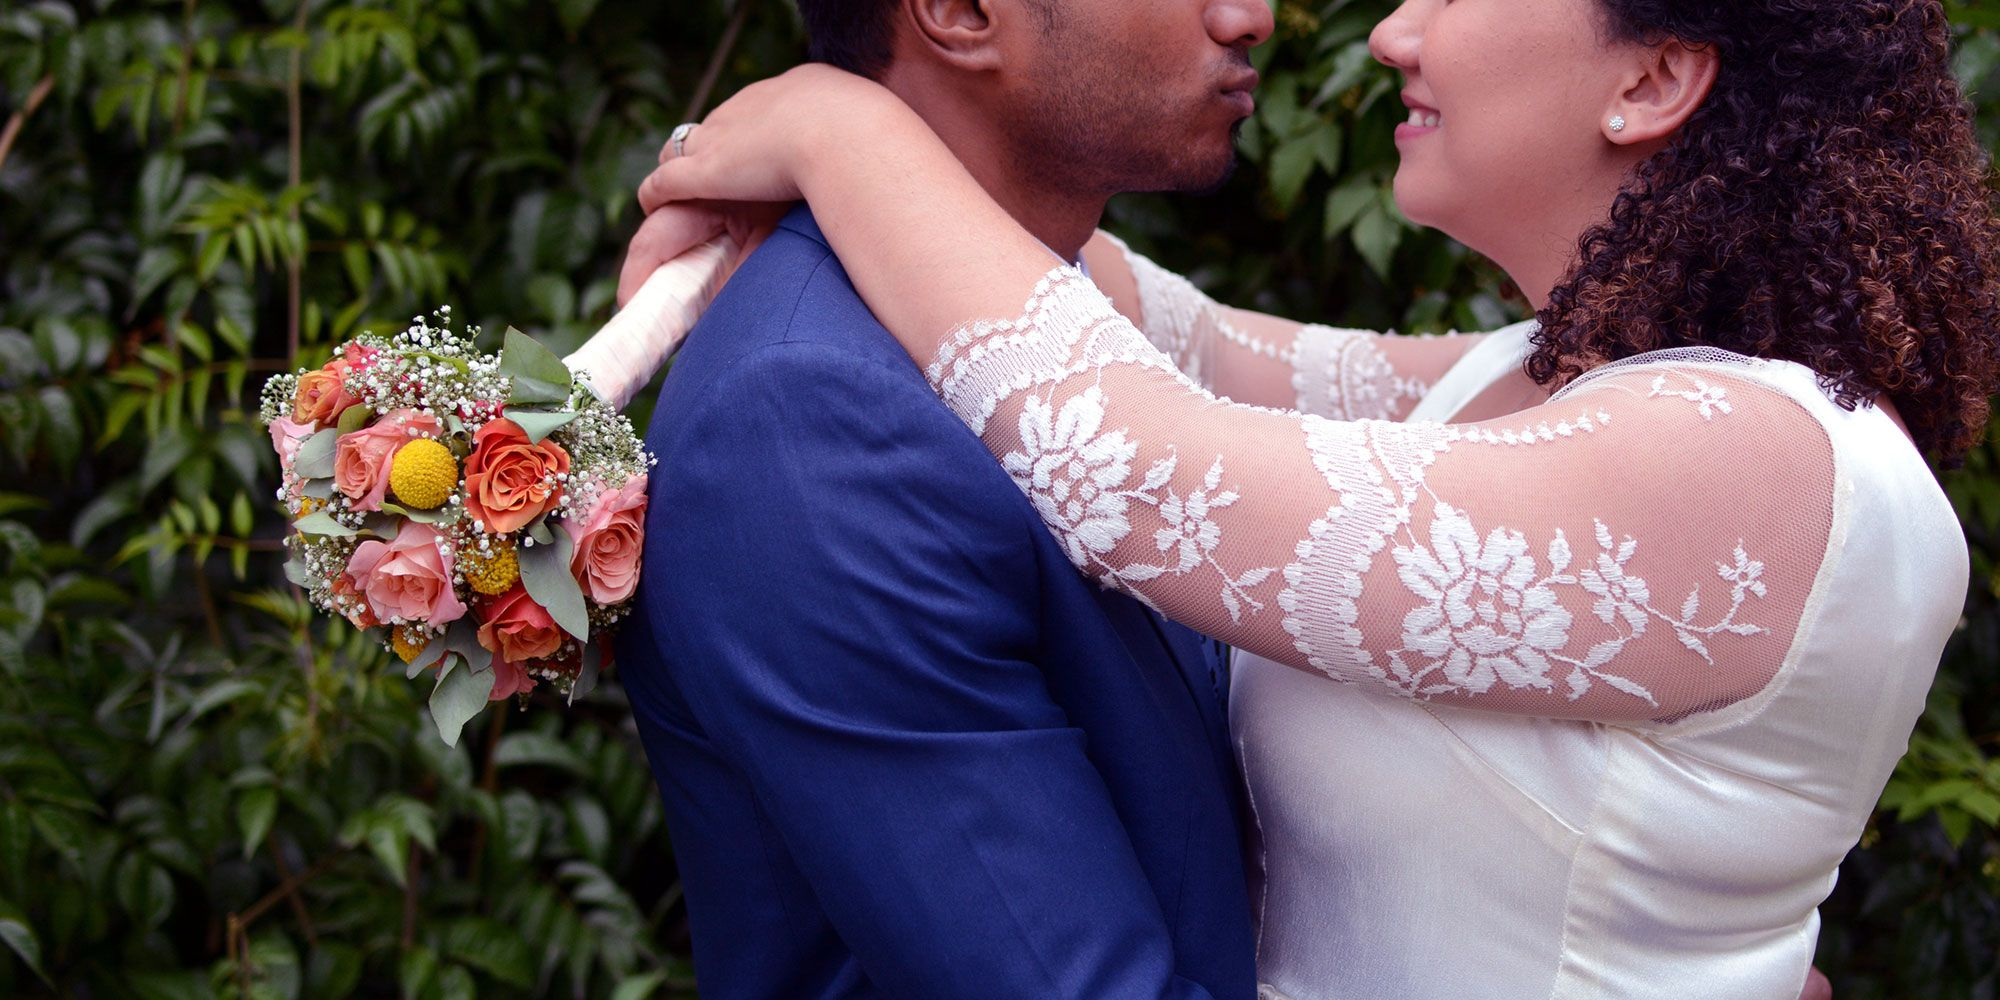 How your personality changes after getting married